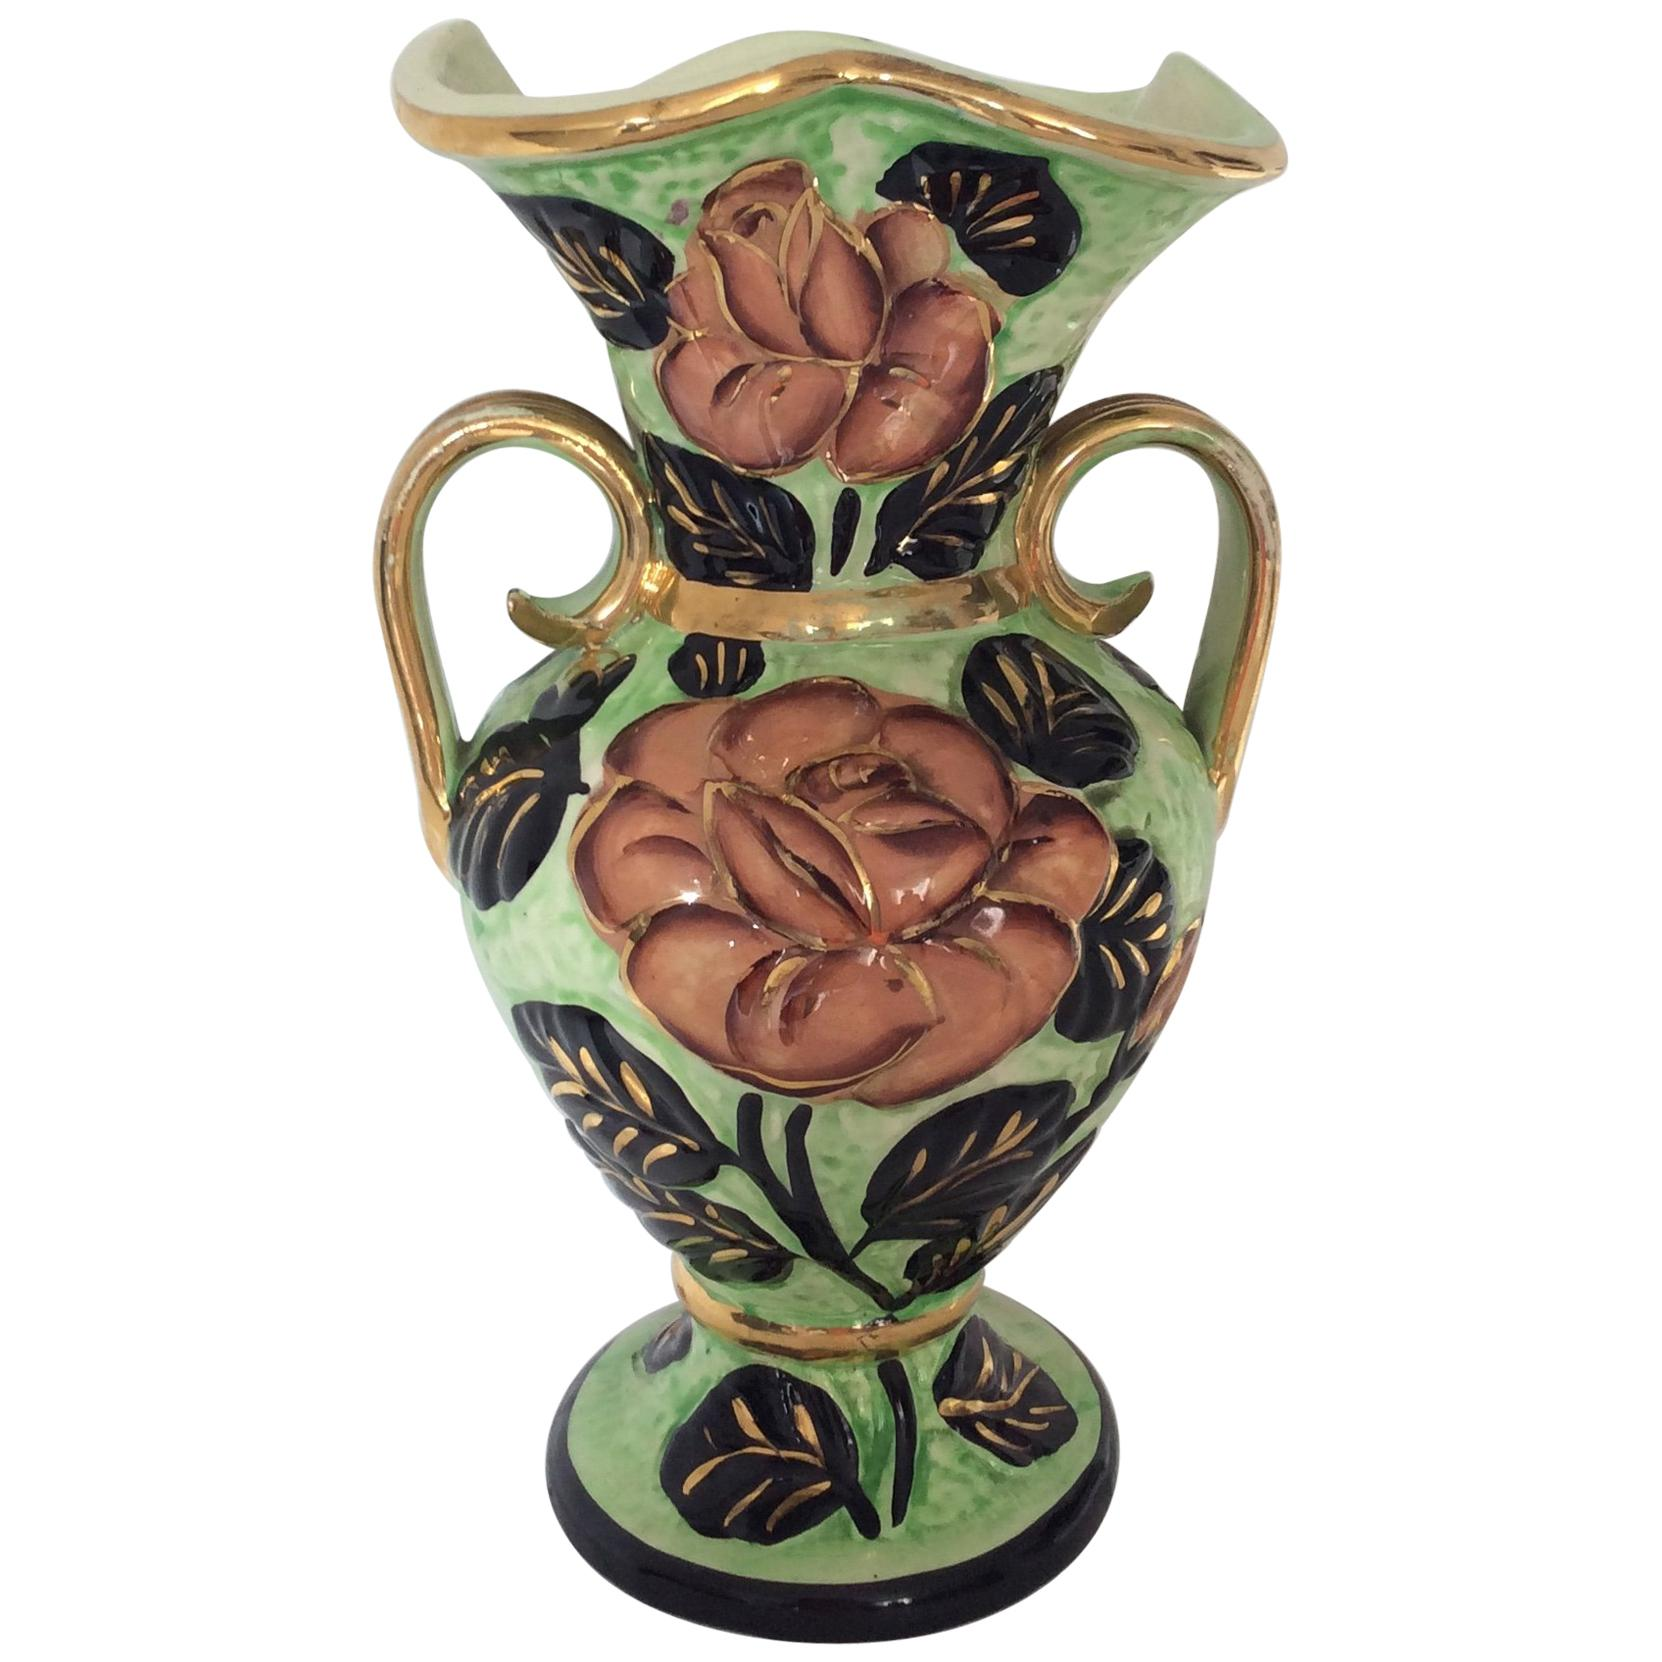 Hand-Painted Ceramic Flower Vase from Vallauris France